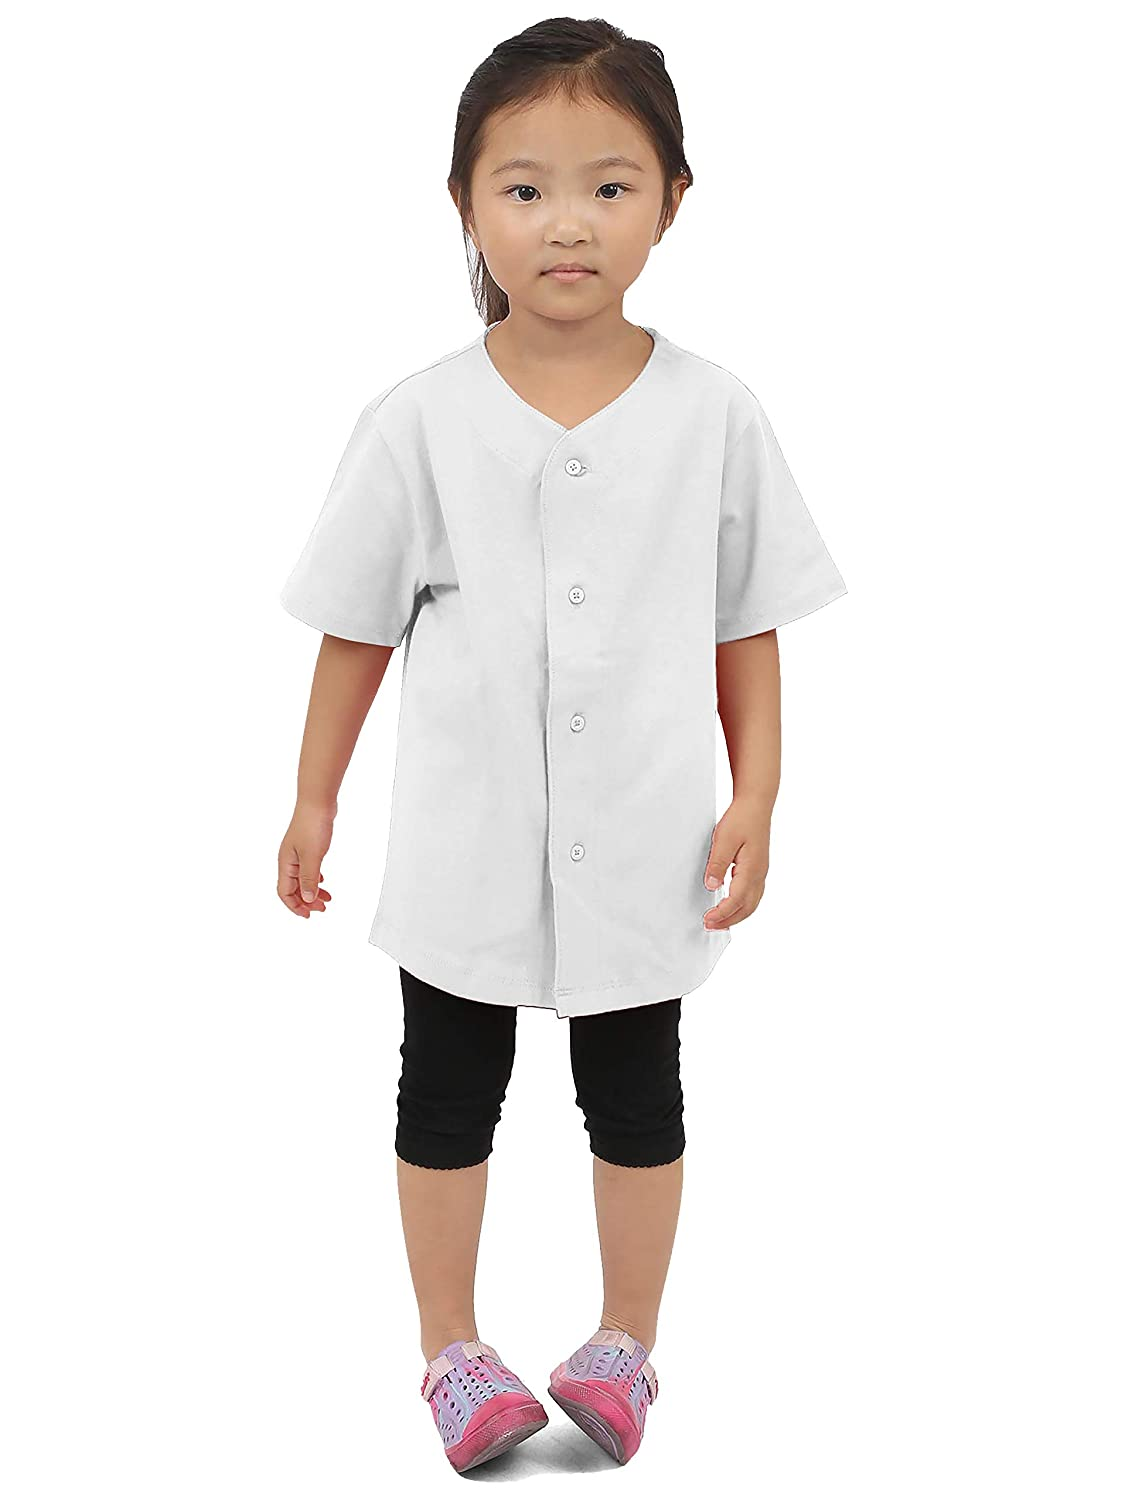 Hat and Beyond Kids Baseball Jersey Button Down T Shirts Active Uniforms